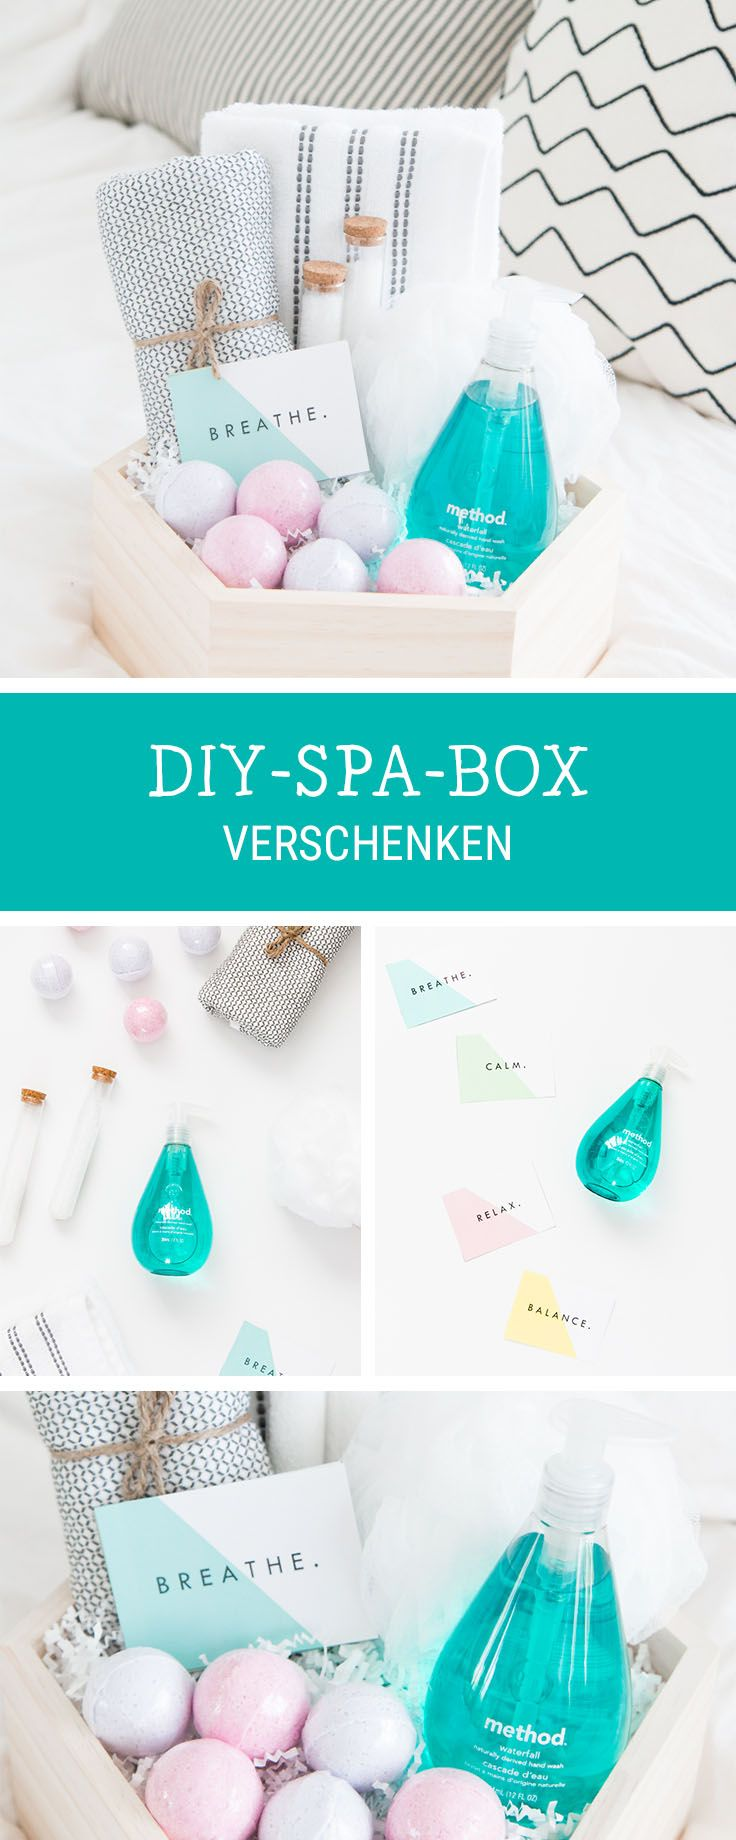 DIY-Inspiration für selbstgemachte Geschenke: Geschenkbox für einen Spa-Tag selbermachen / wooden gift box for a relaxing spa day via DaWanda.com